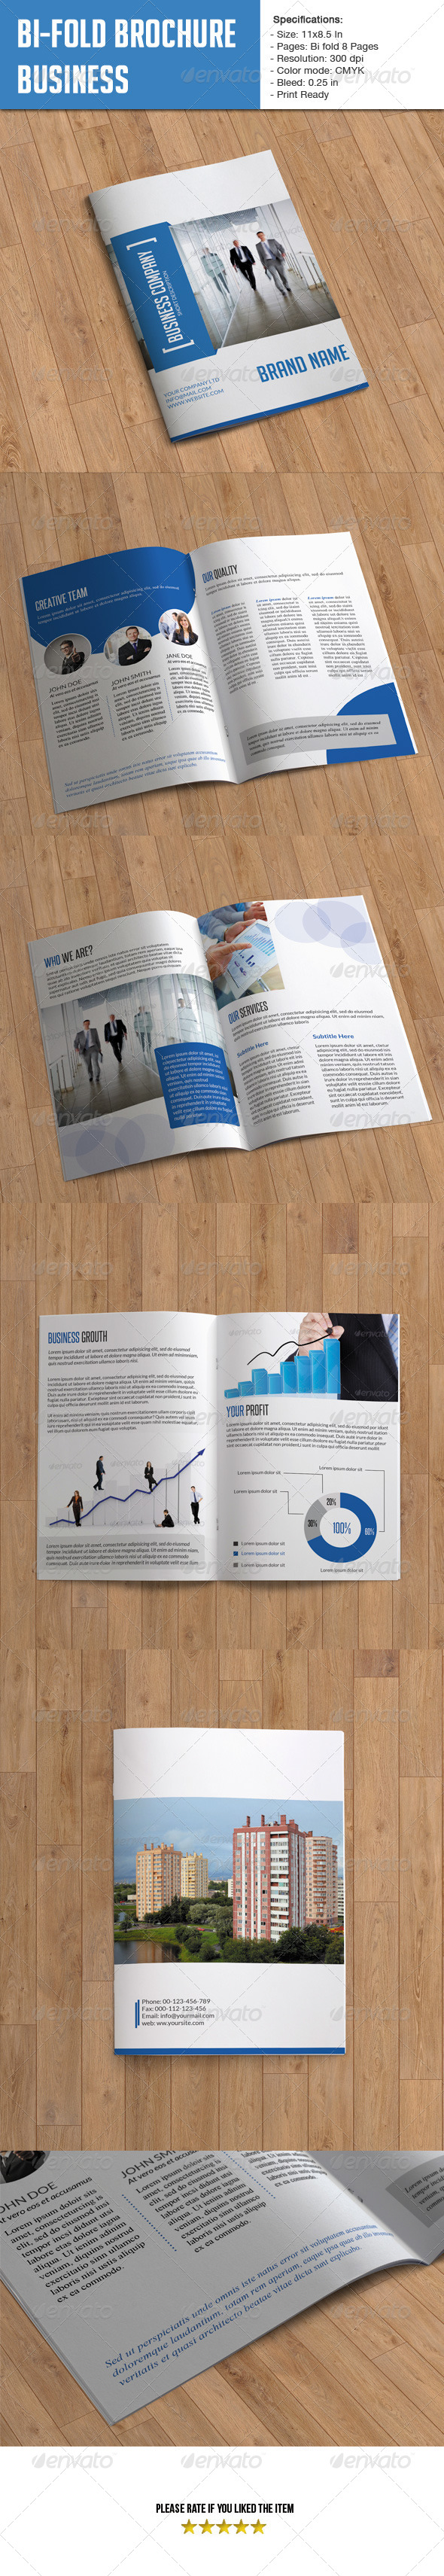 GraphicRiver Bifold Brochure for Business- 8 Pages 6123212